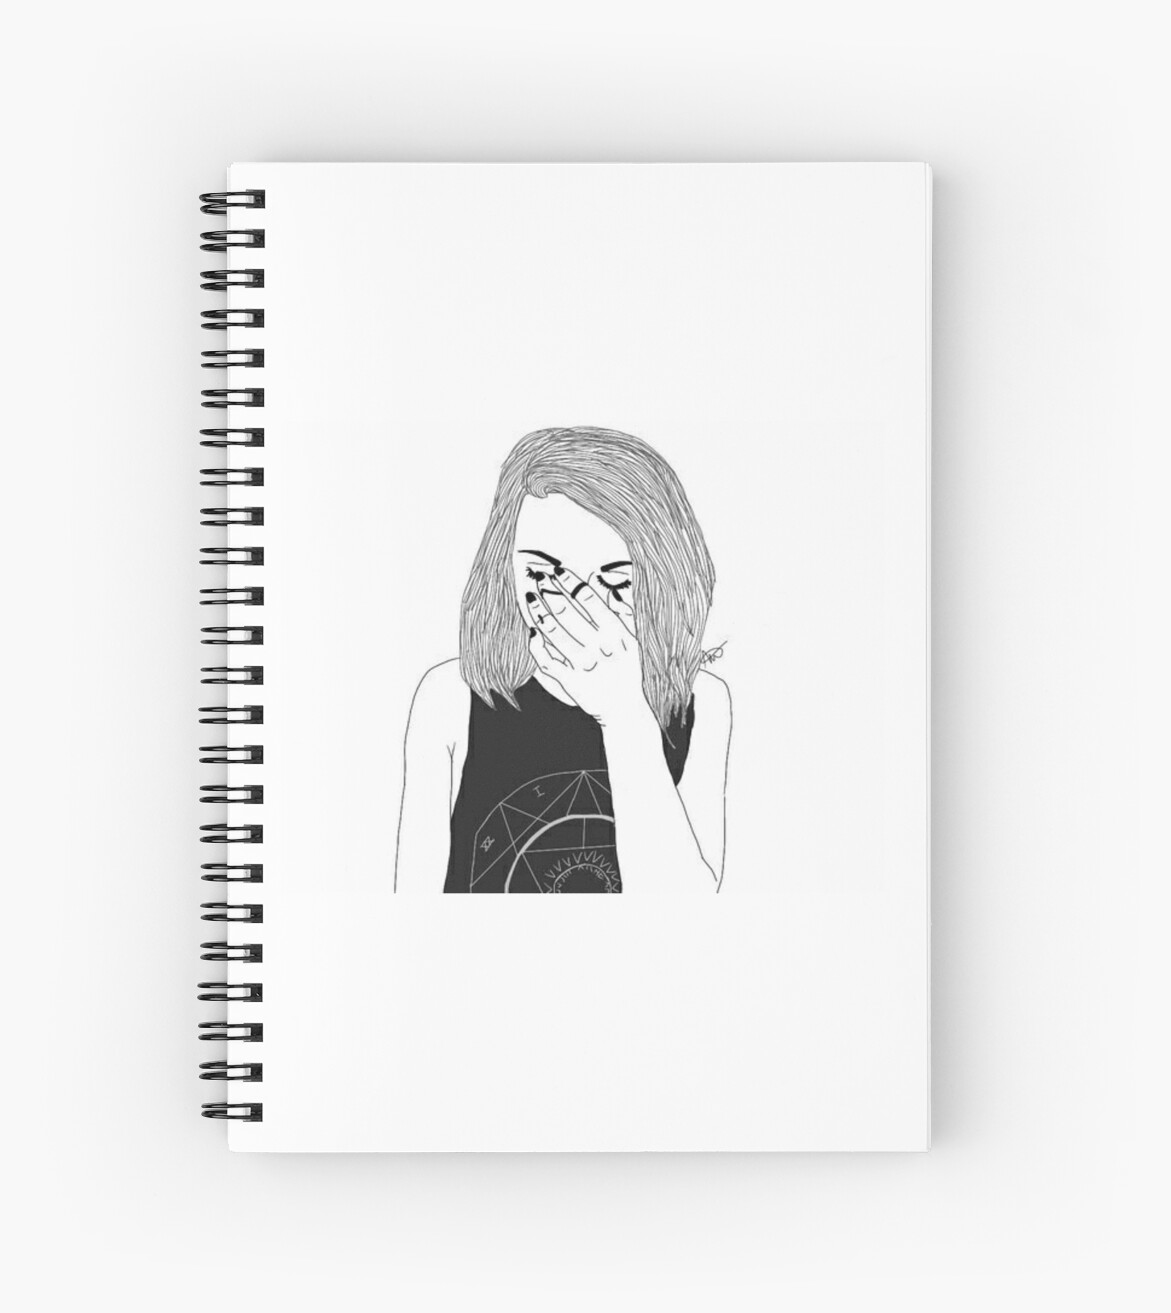 u0026quot outline girl tumblr transparent u0026quot  spiral notebooks by